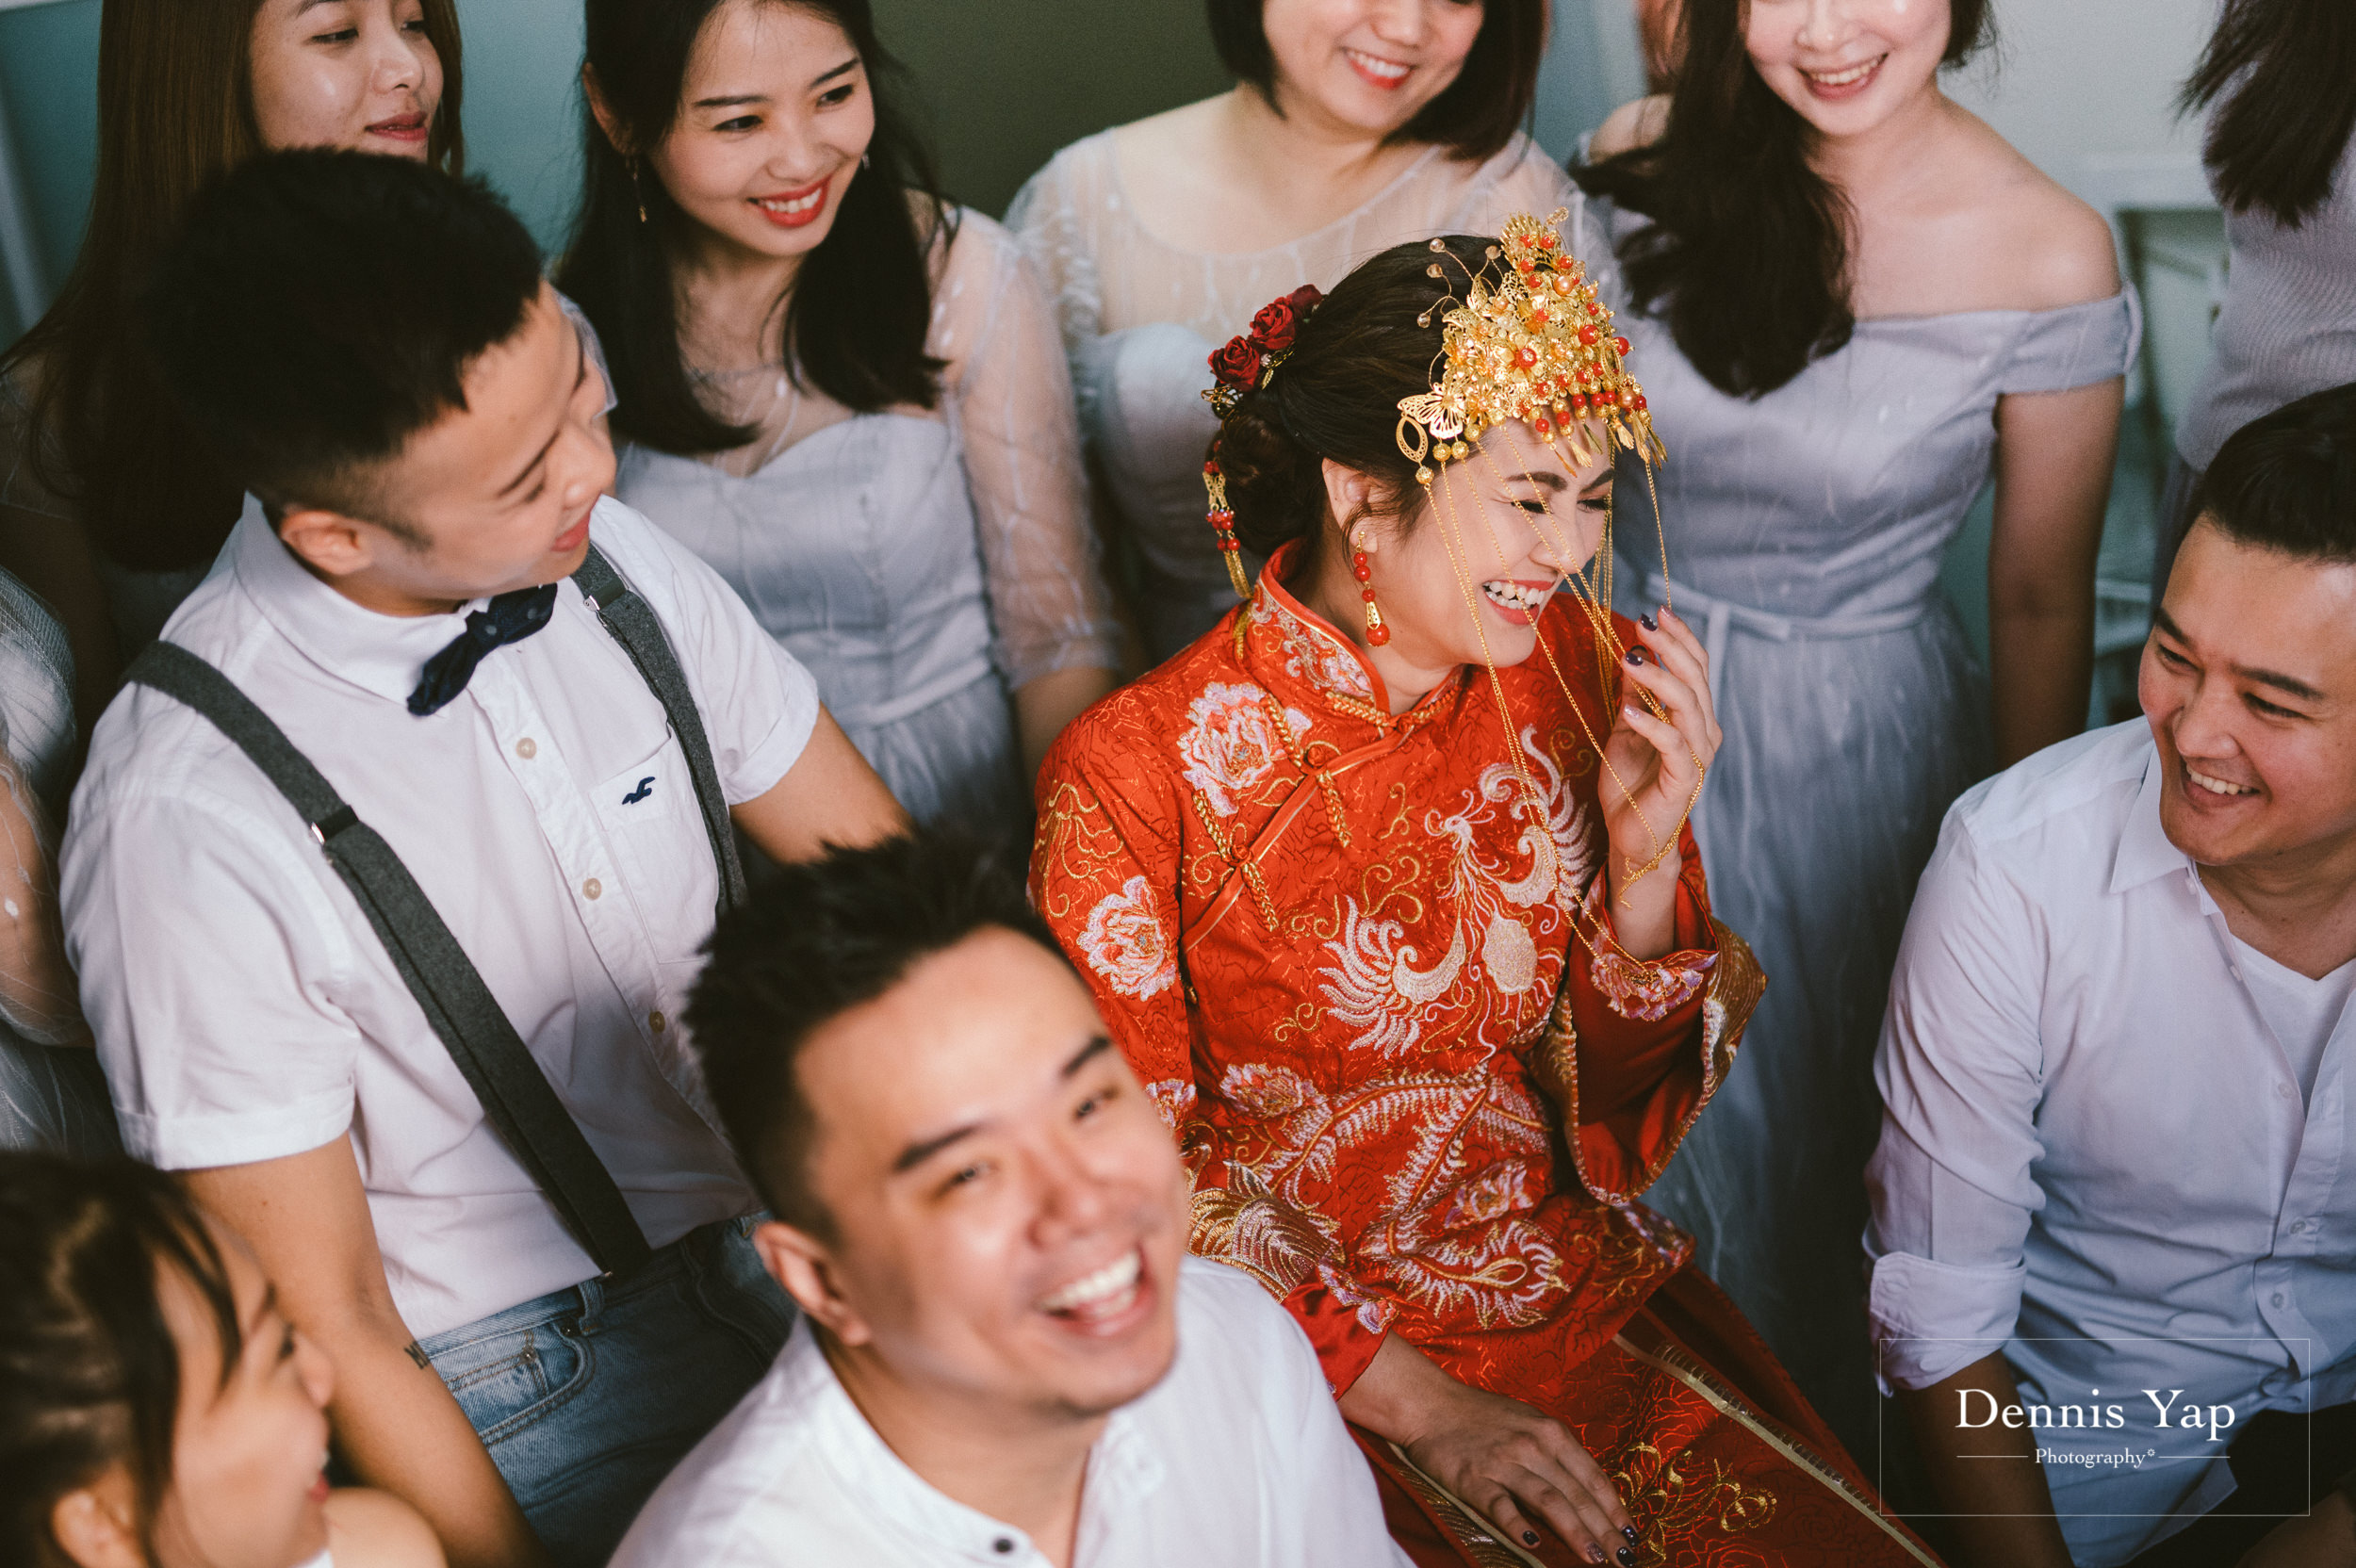 jimmy mellissa wedding day traditional chinese kua dennis yap photography-8.jpg